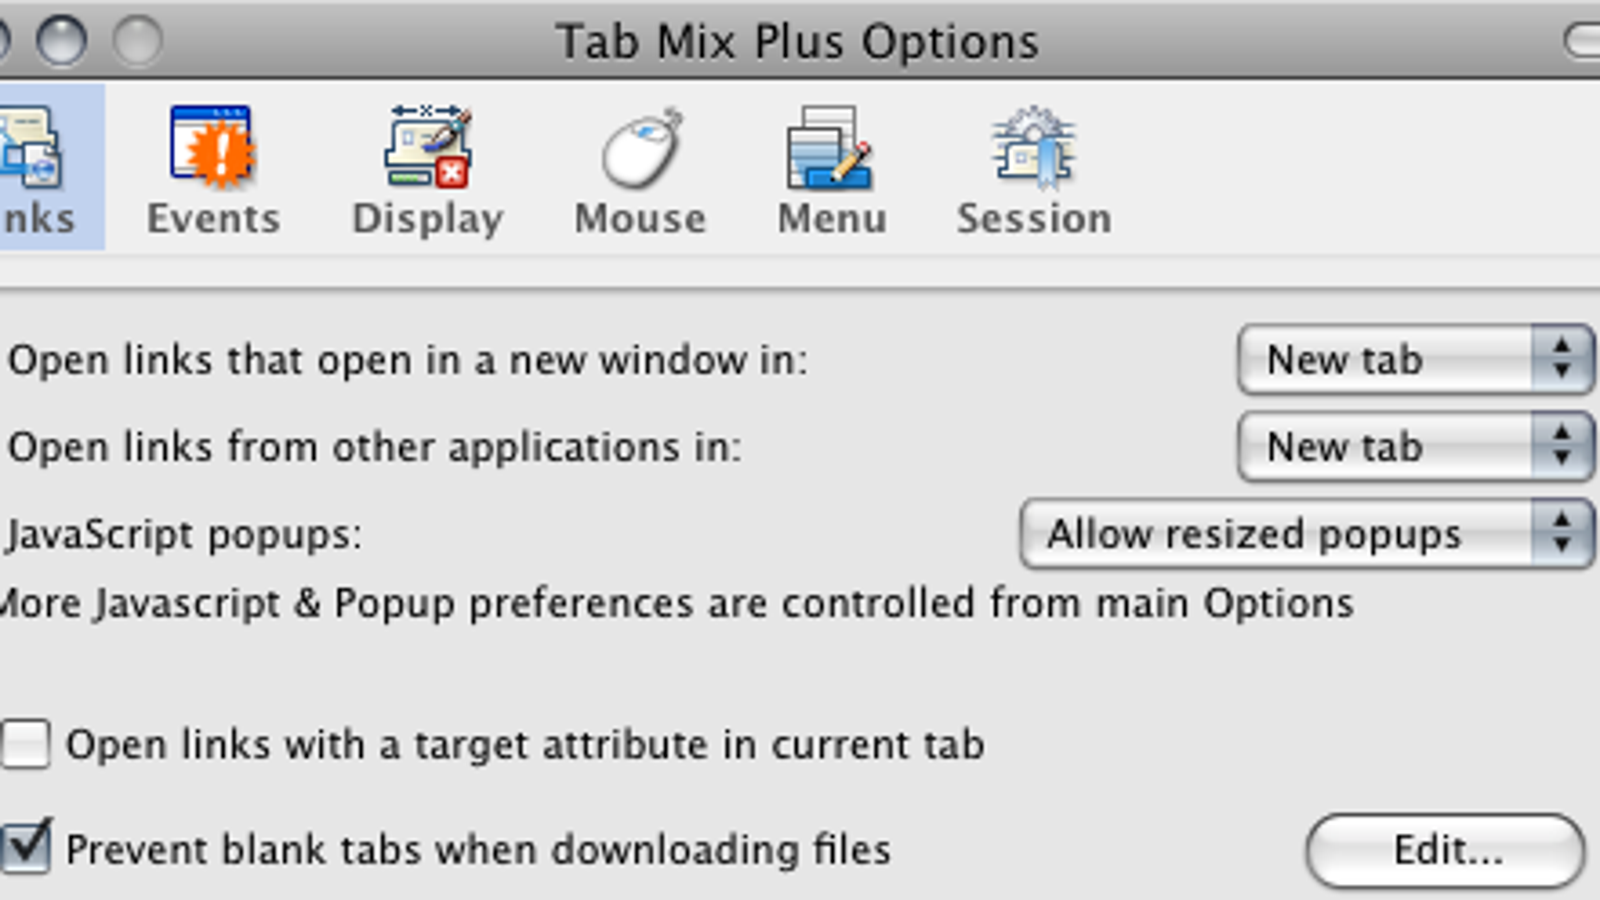 Tab Mix Plus Updates for Firefox 3